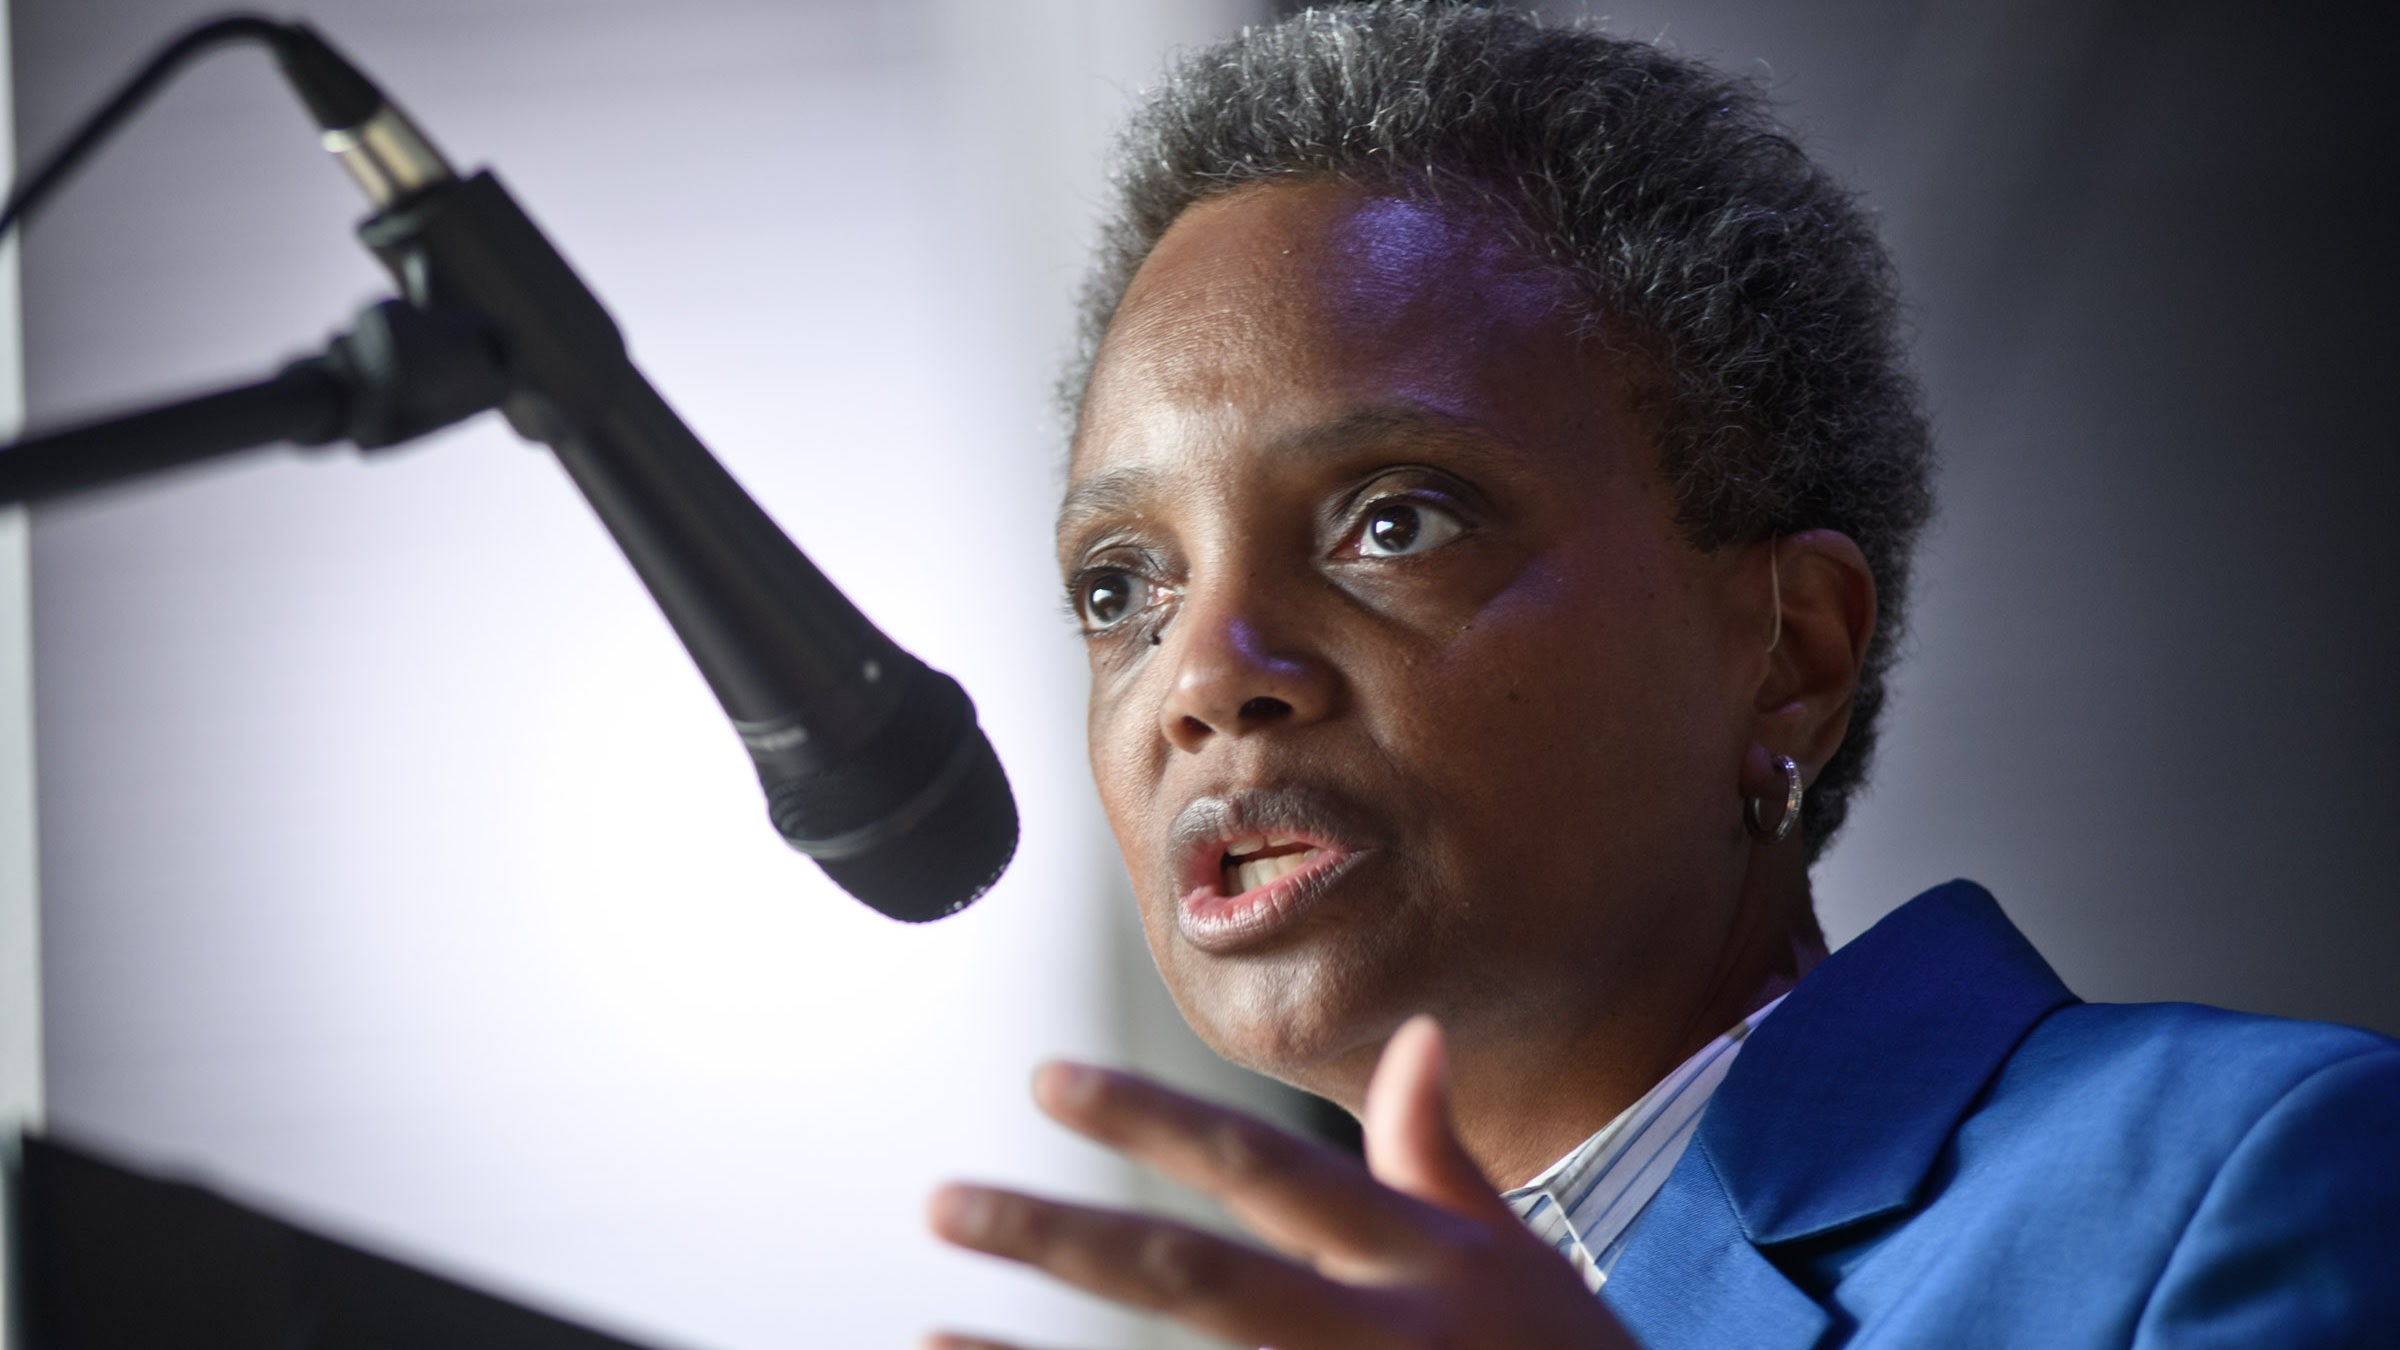 Anjanette Young, Black Woman Handcuffed Naked During Wrongful Raid, Says Chicago Mayor Lori Lightfoot Betrayed Her